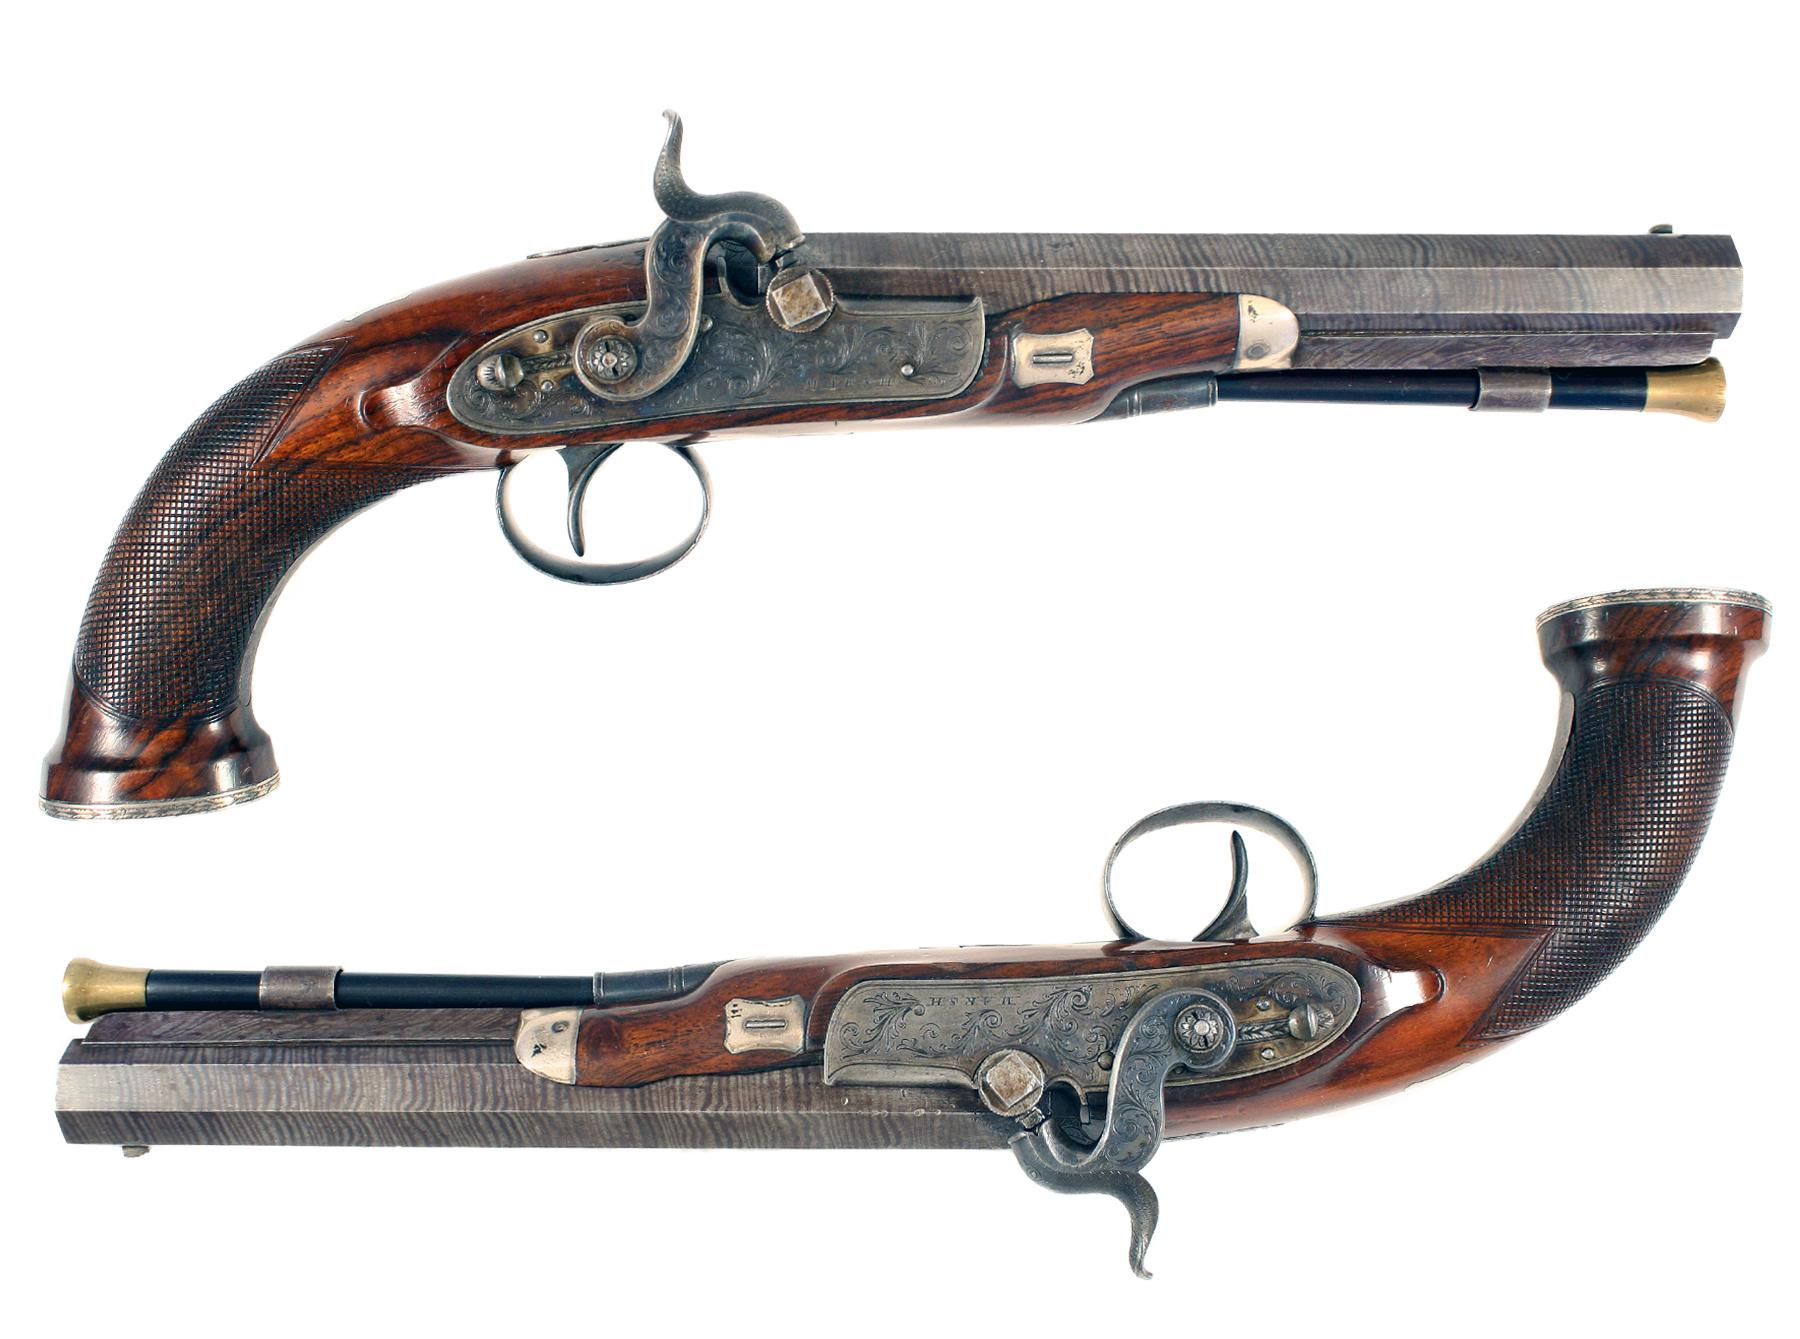 A Pair of Percussion Pistols